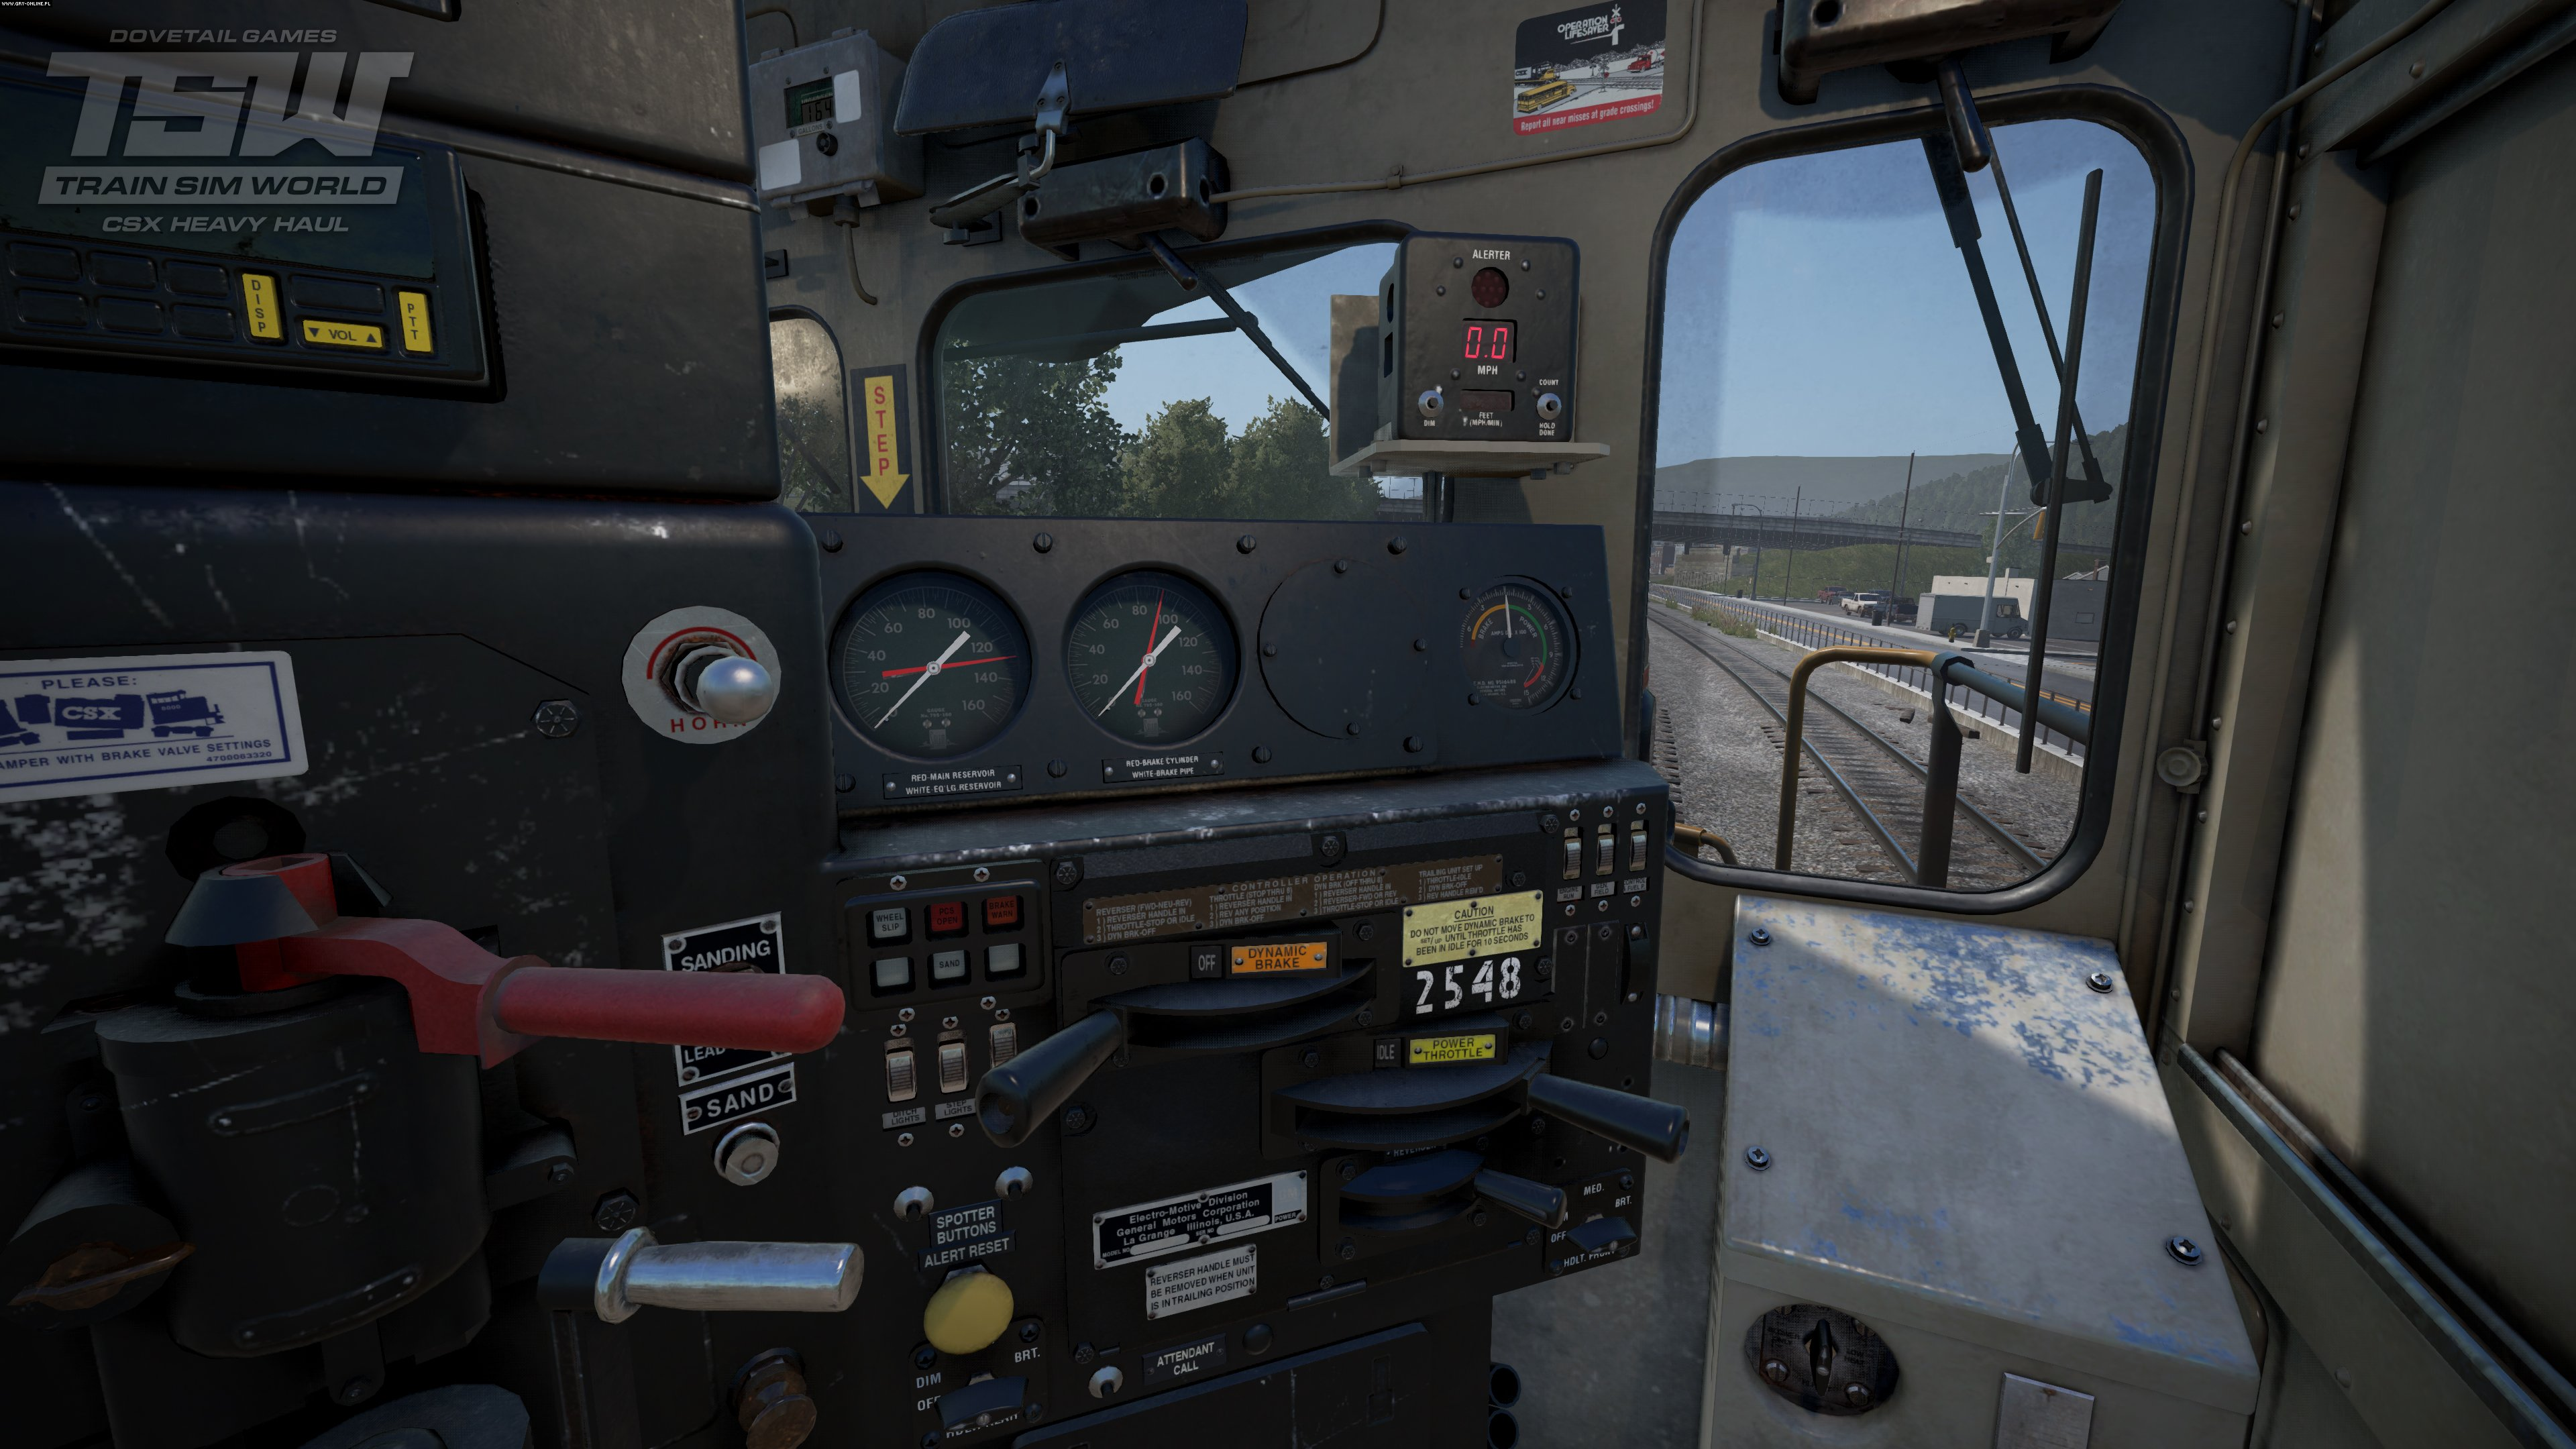 Train Sim World: CSX Heavy Haul PC, XONE Games Image 8/8, Dovetail Games/Rail Simulator Developments